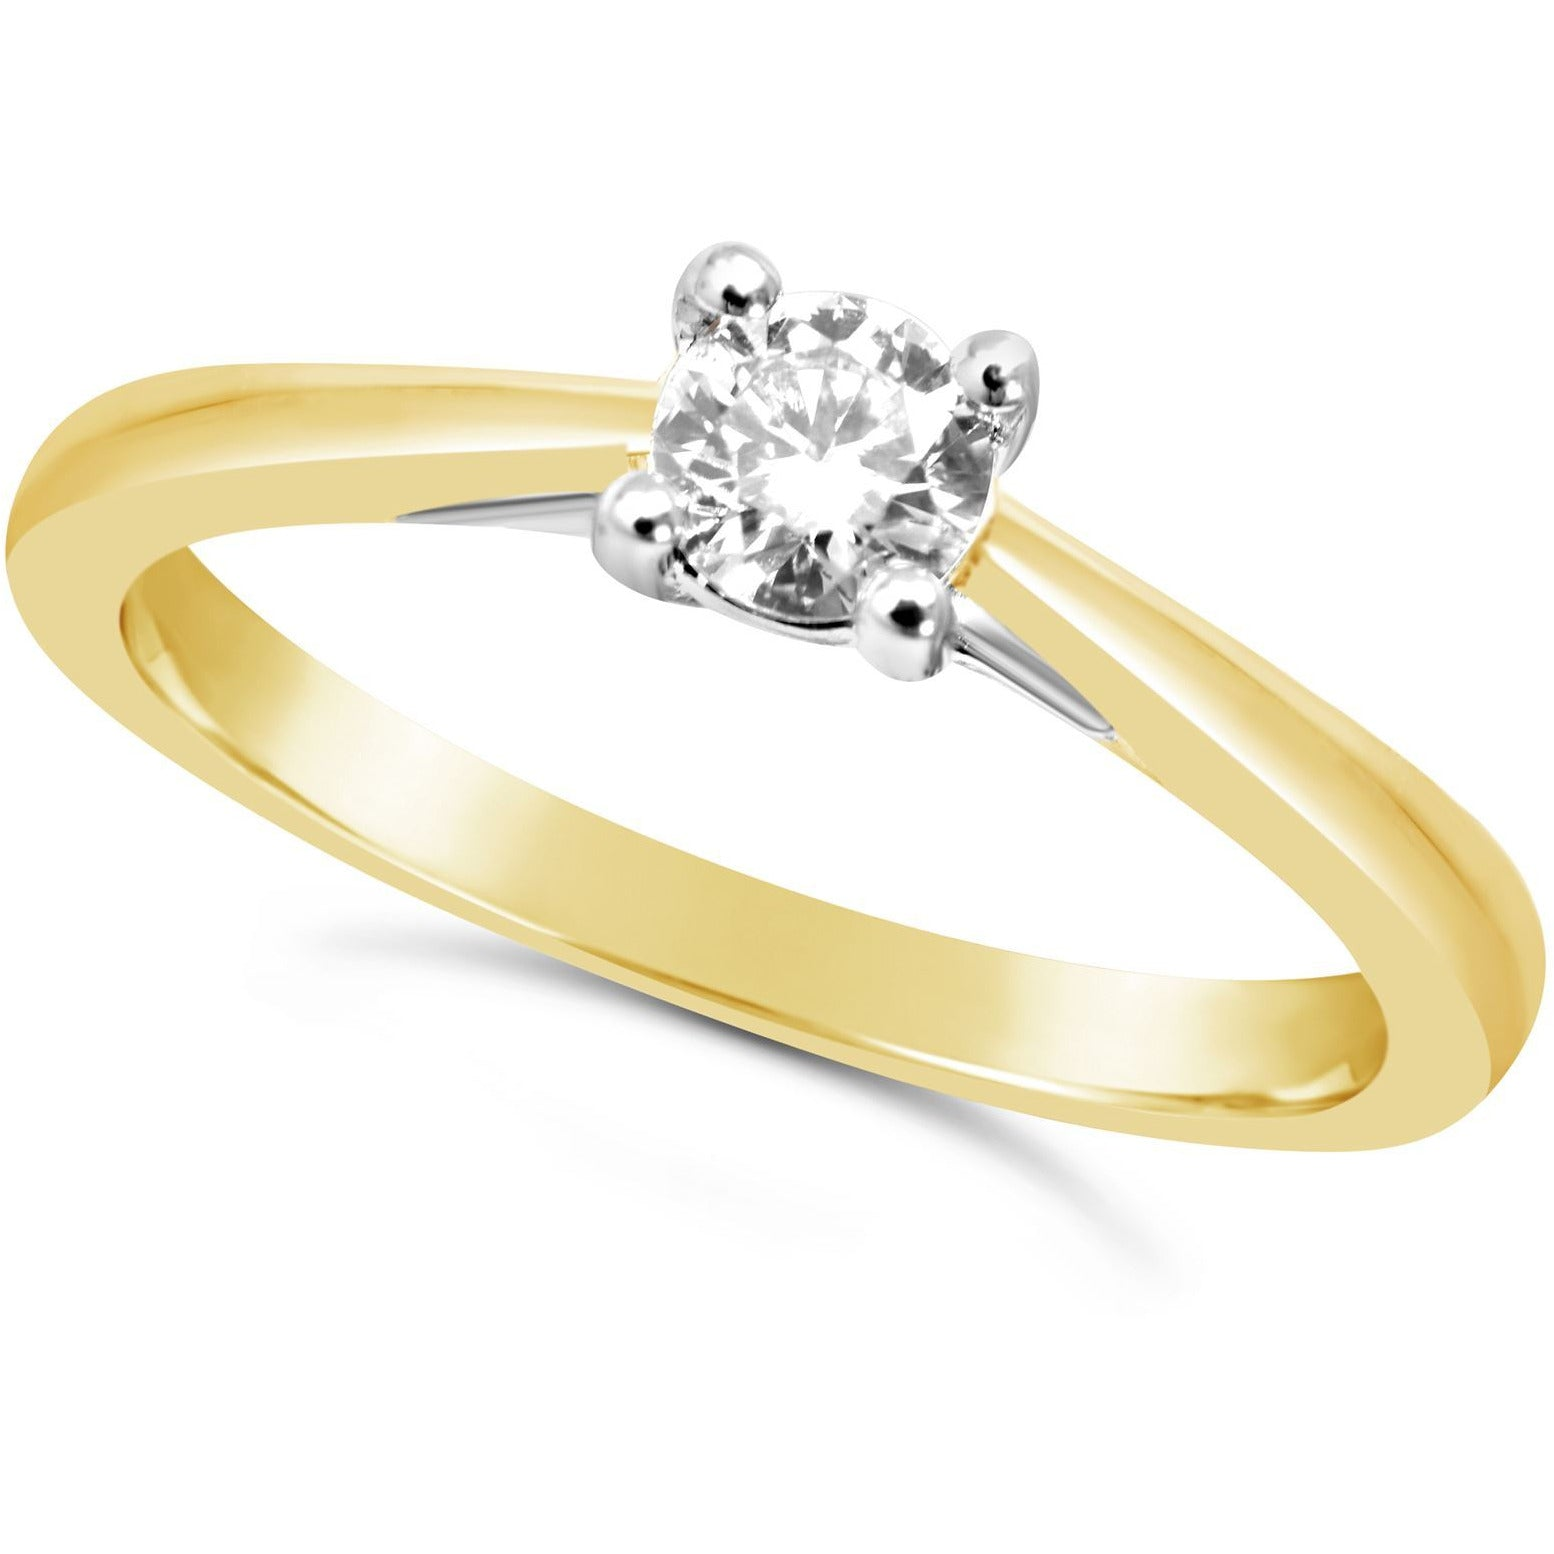 yellow gold solitaire diamond ring with naturaly high quality diamond - G&S Diamonds